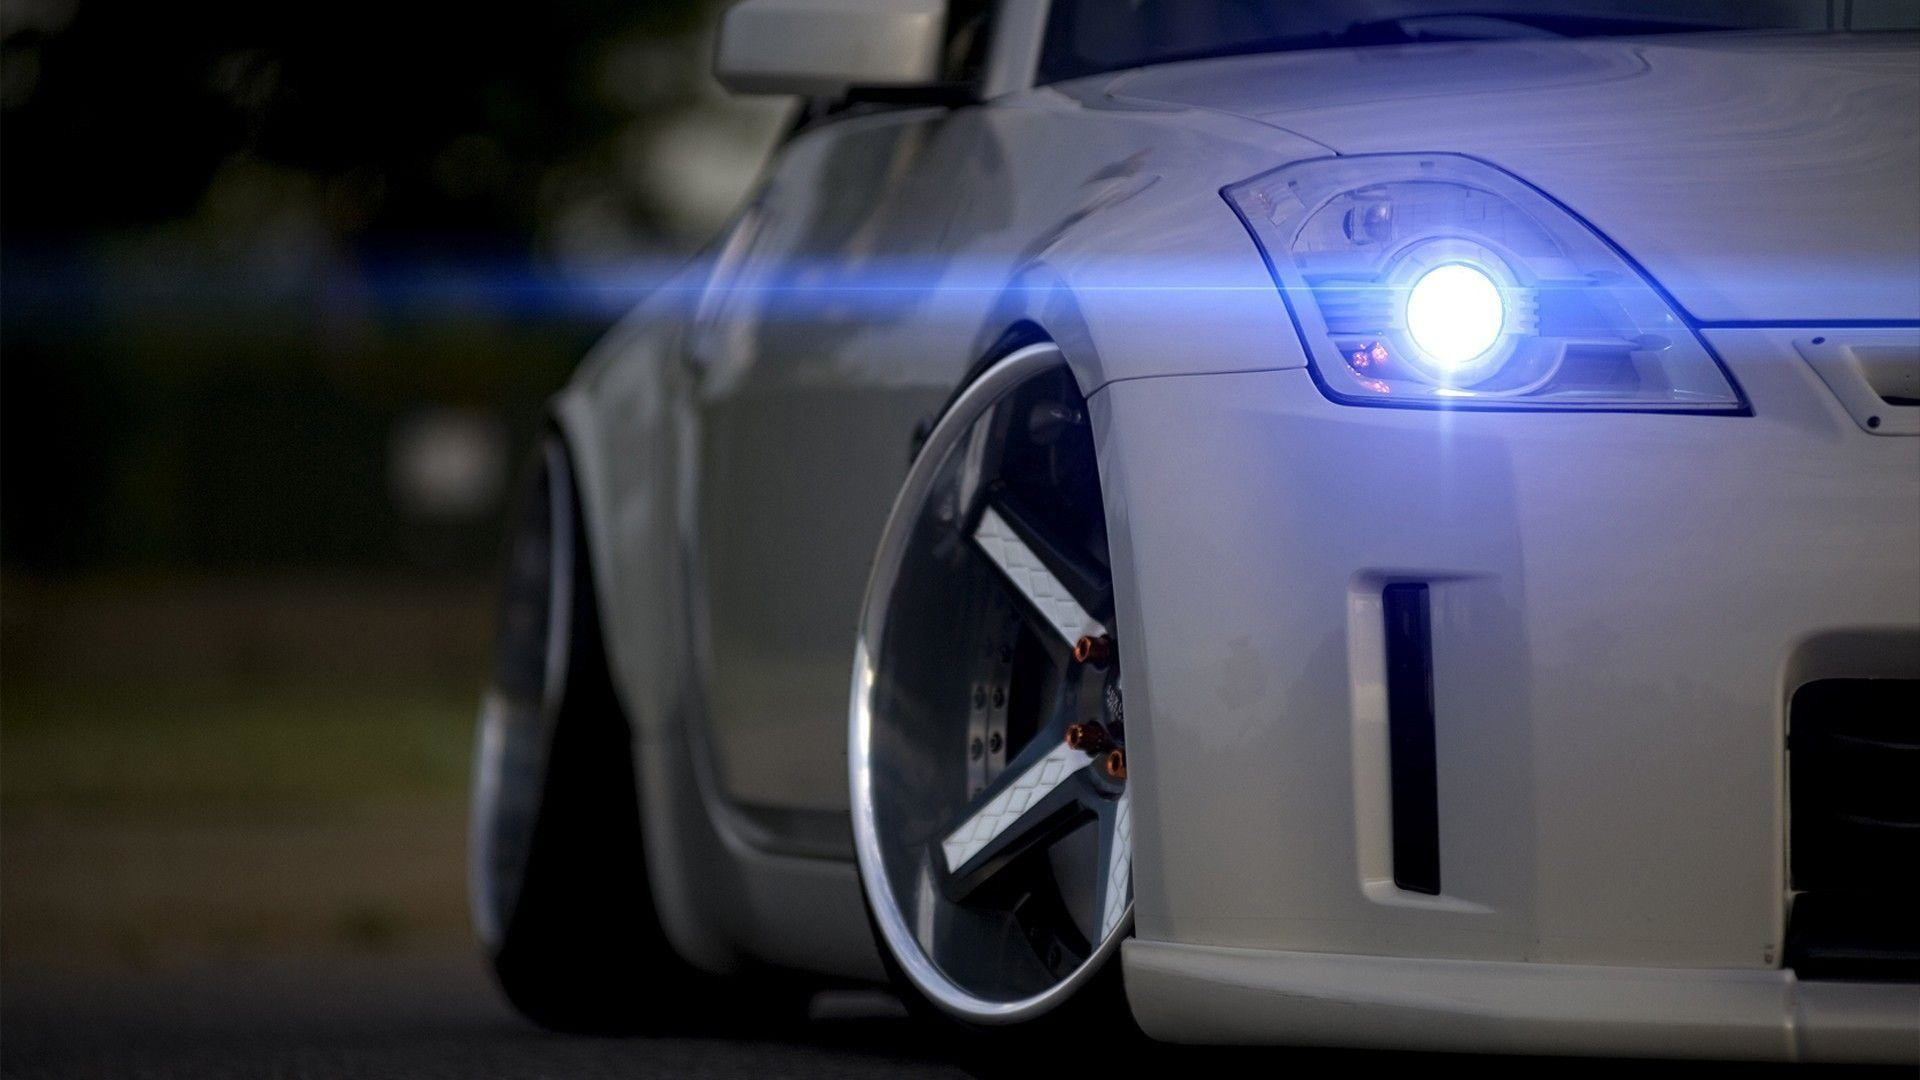 1920x1080 Nissan 350z Wallpaper 20135  px ~ FreeWallSource.